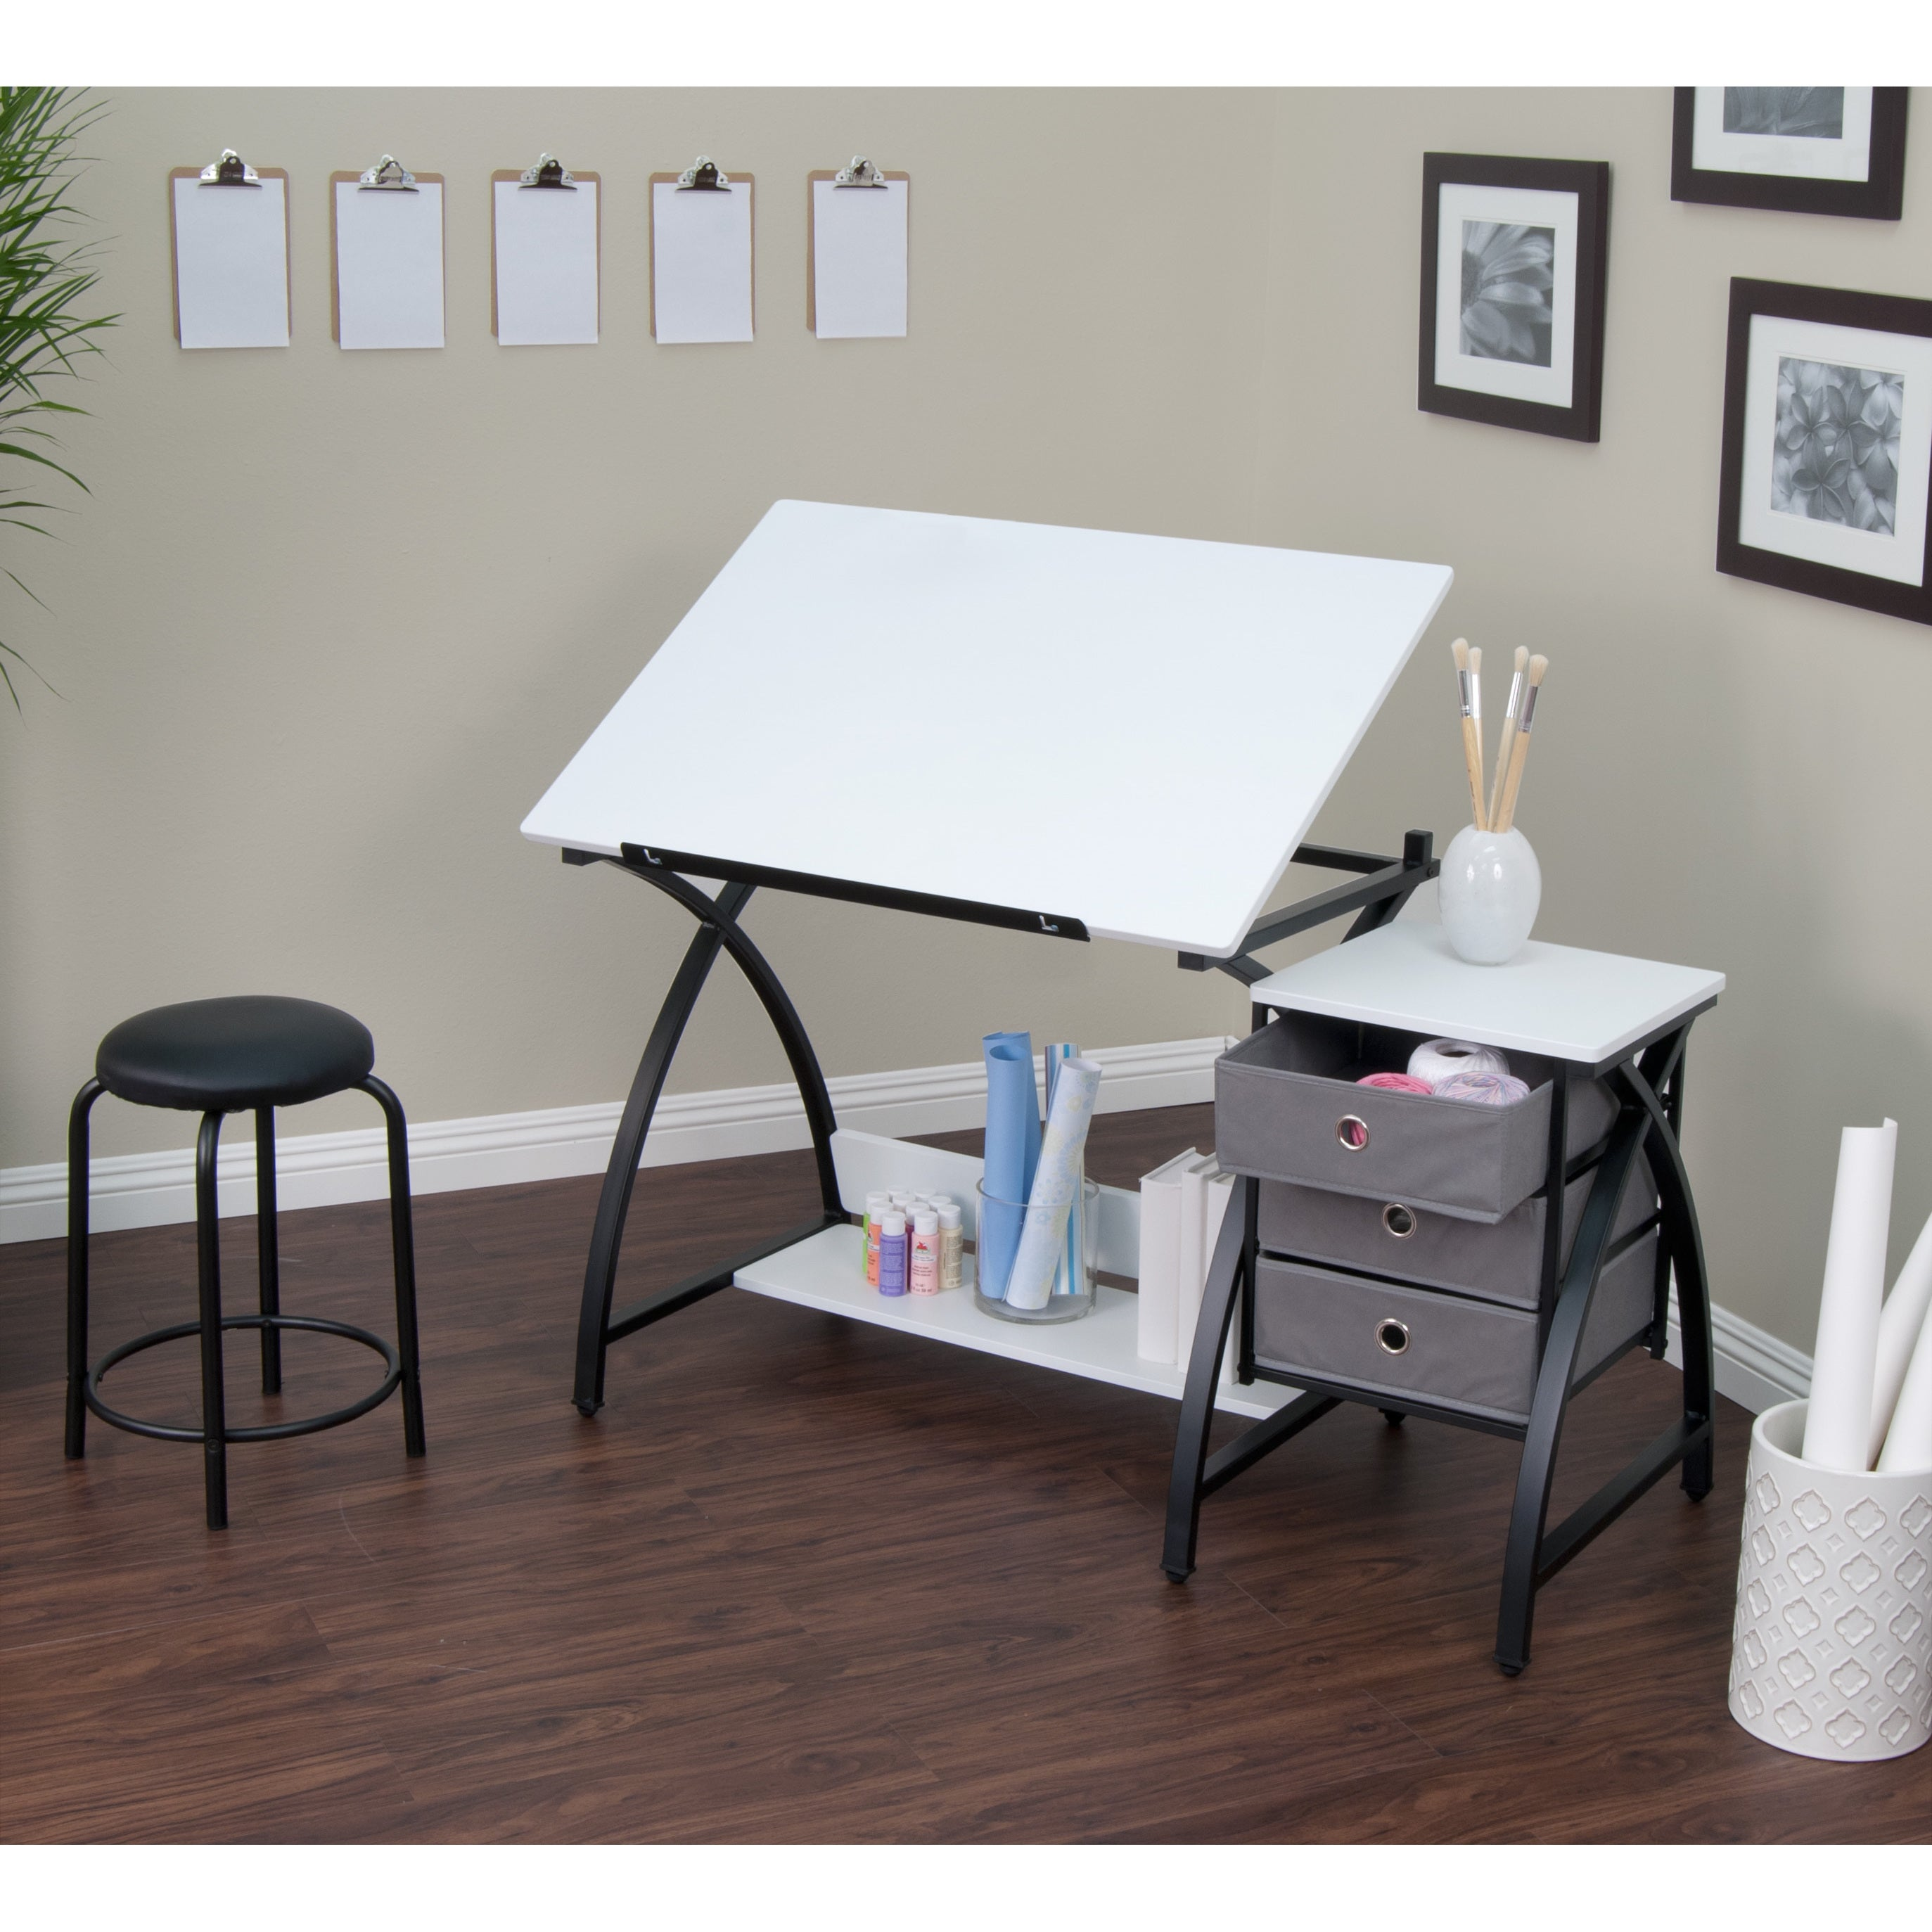 Studio Designs Comet Black And White Metal Drafting Hobby Craft Table With  Stool   Free Shipping Today   Overstock   16606189